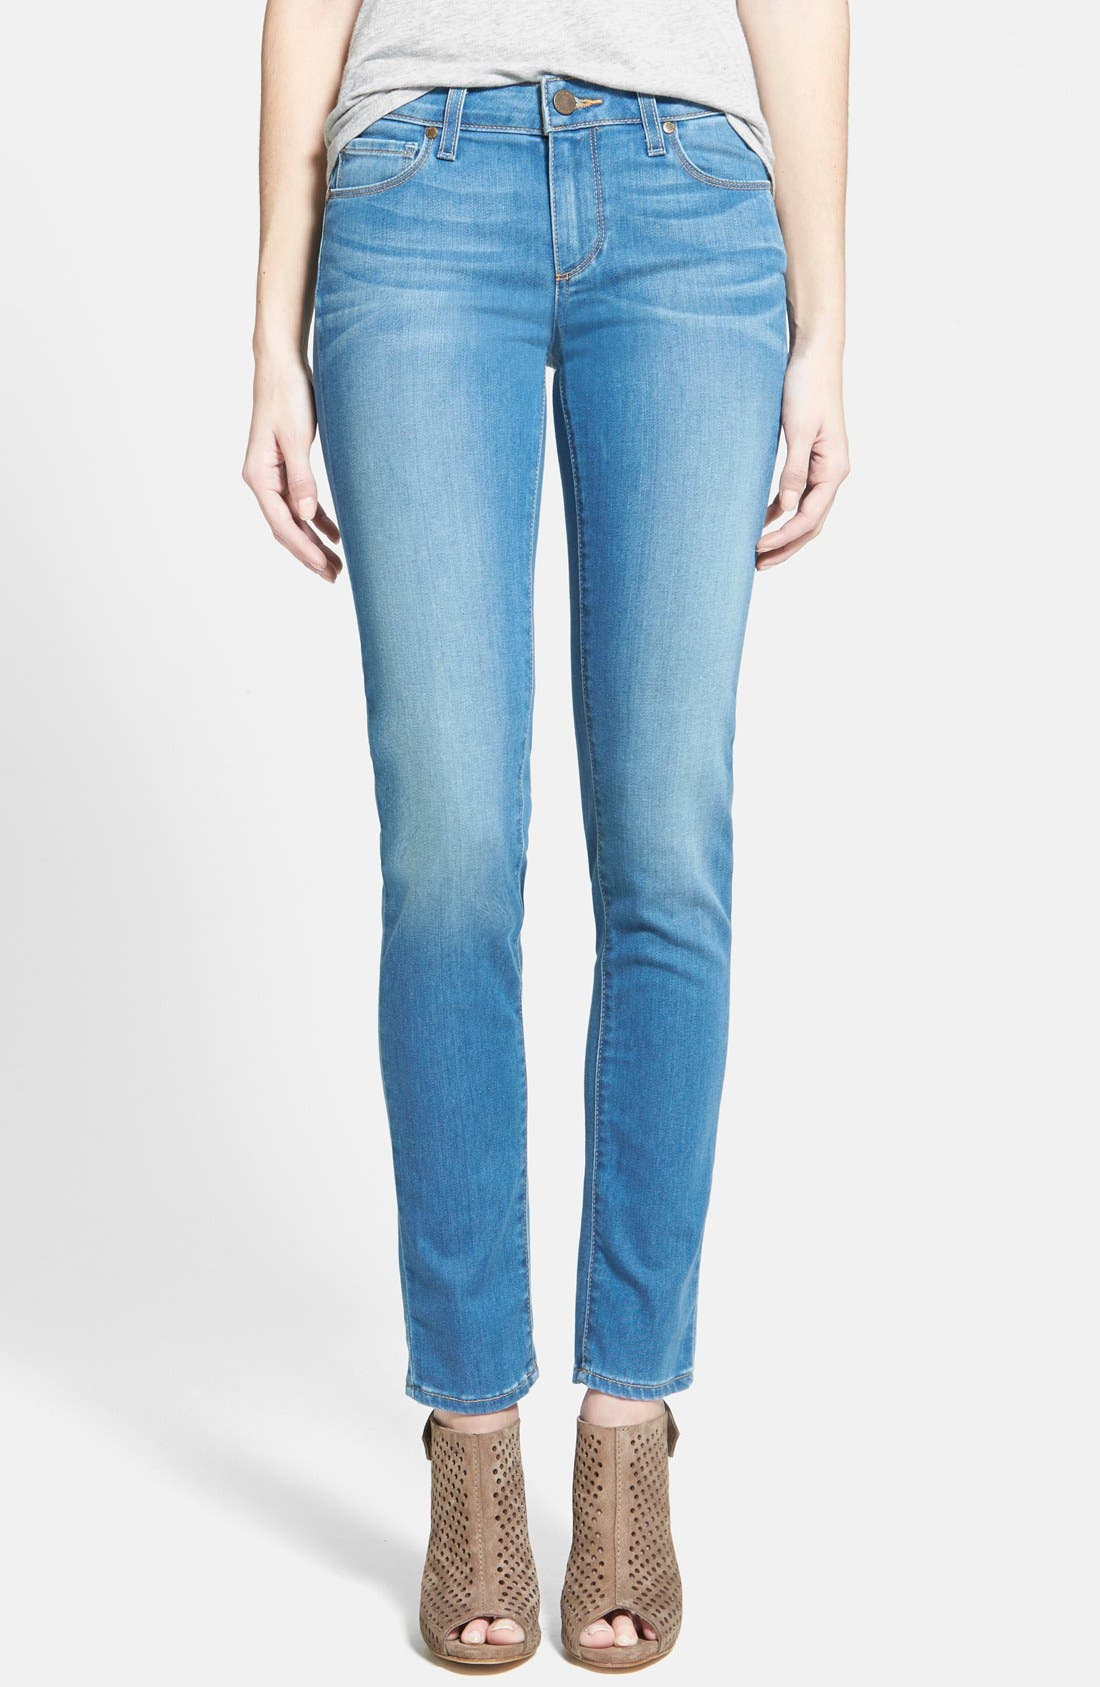 Alternate Image 1 Selected - Paige Denim 'Skyline' Skinny Jeans (Halstead Blue)